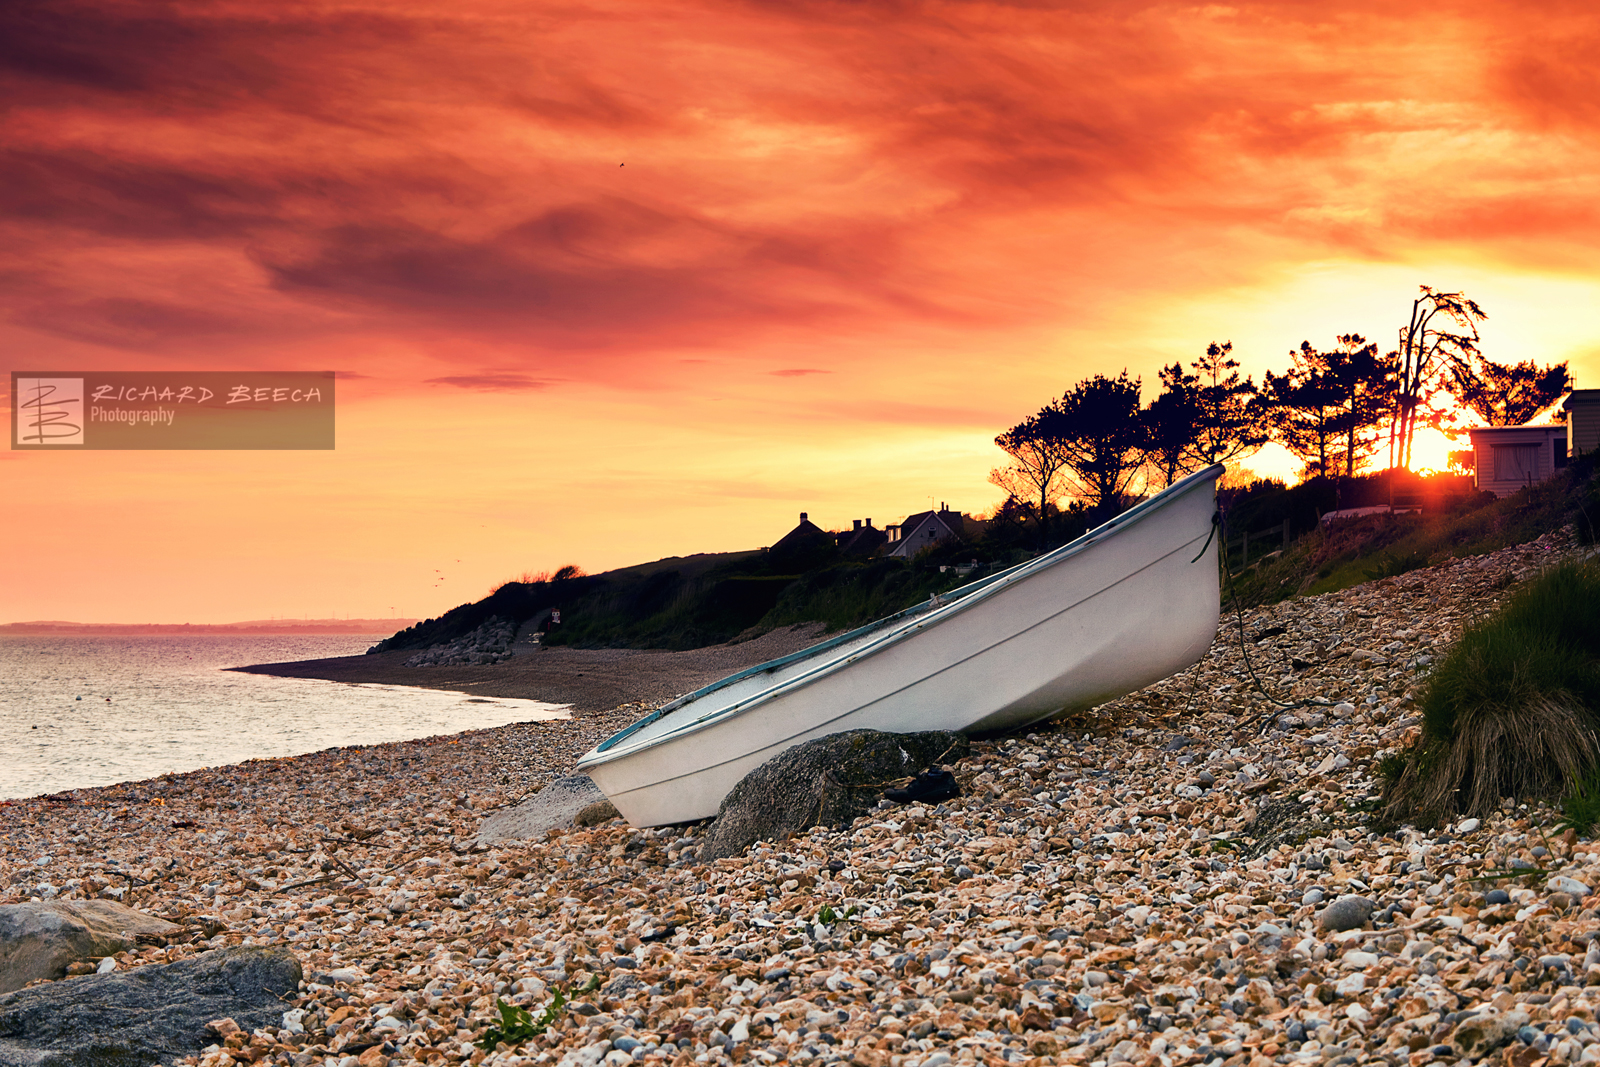 Ringstead Boat Sunset